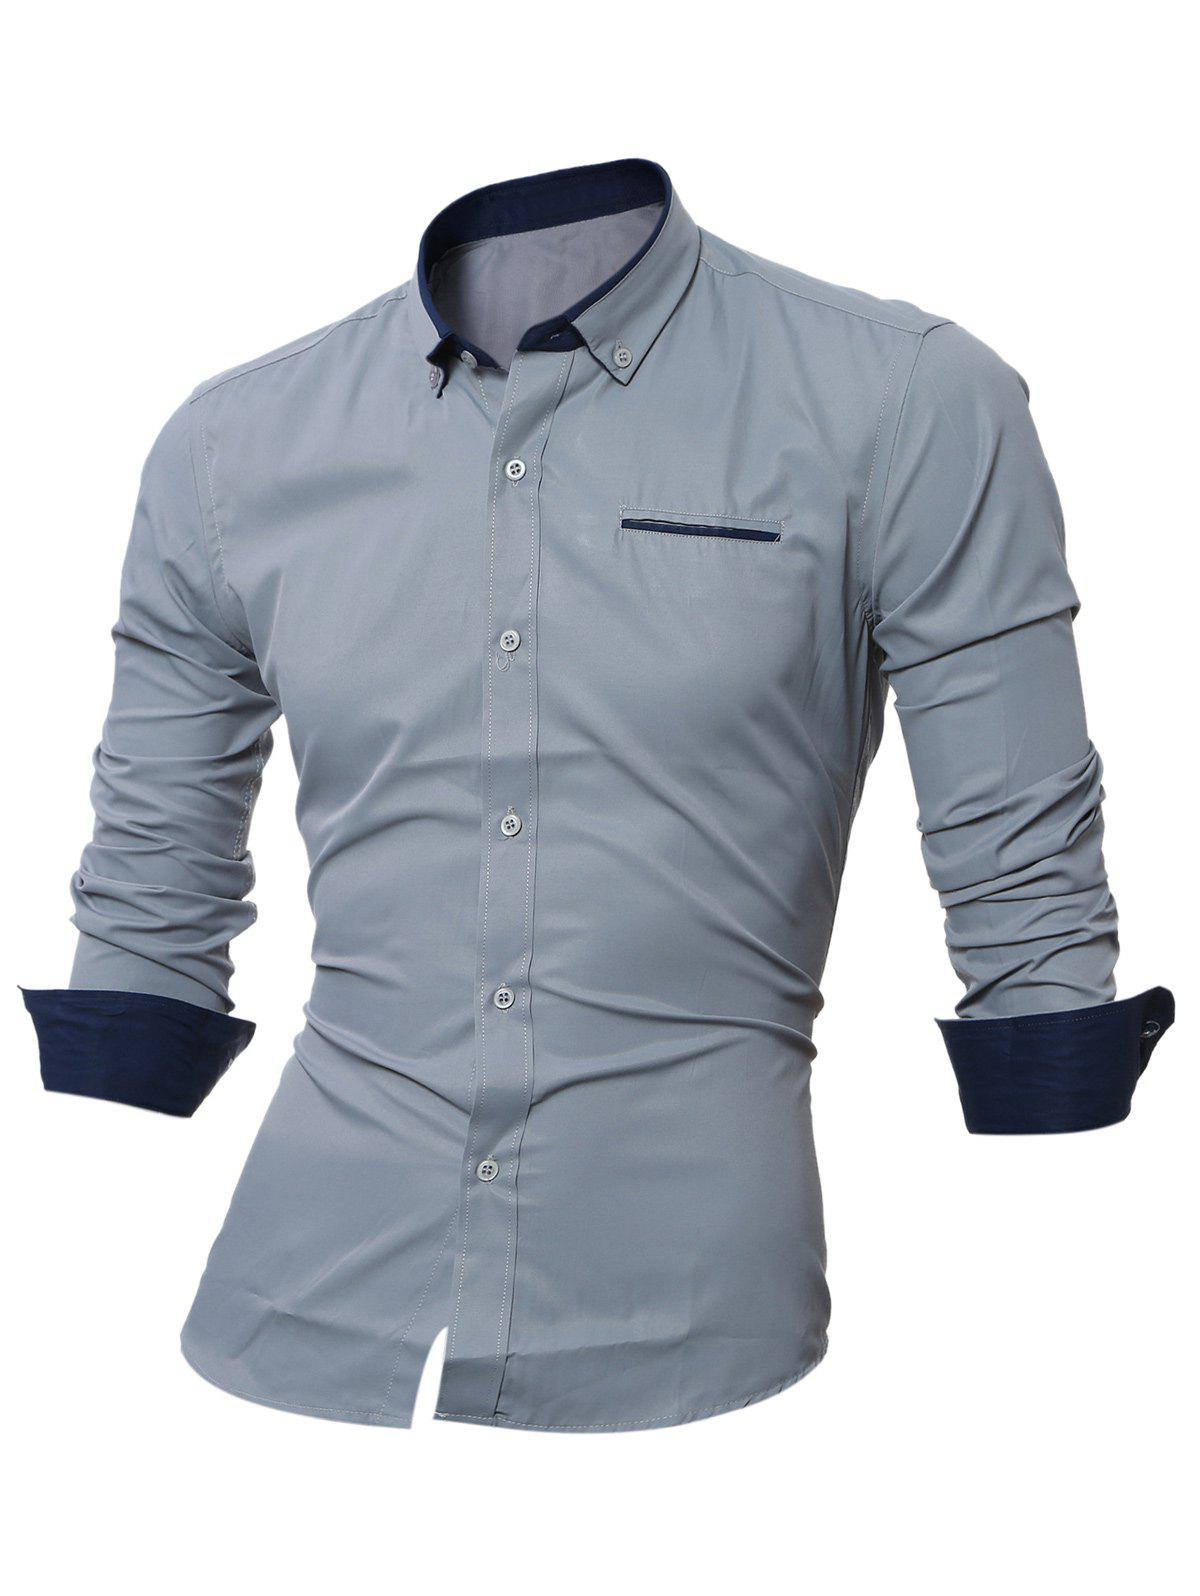 Long Sleeve Contrast Pocket Button Down Shirt - GRAY 2XL